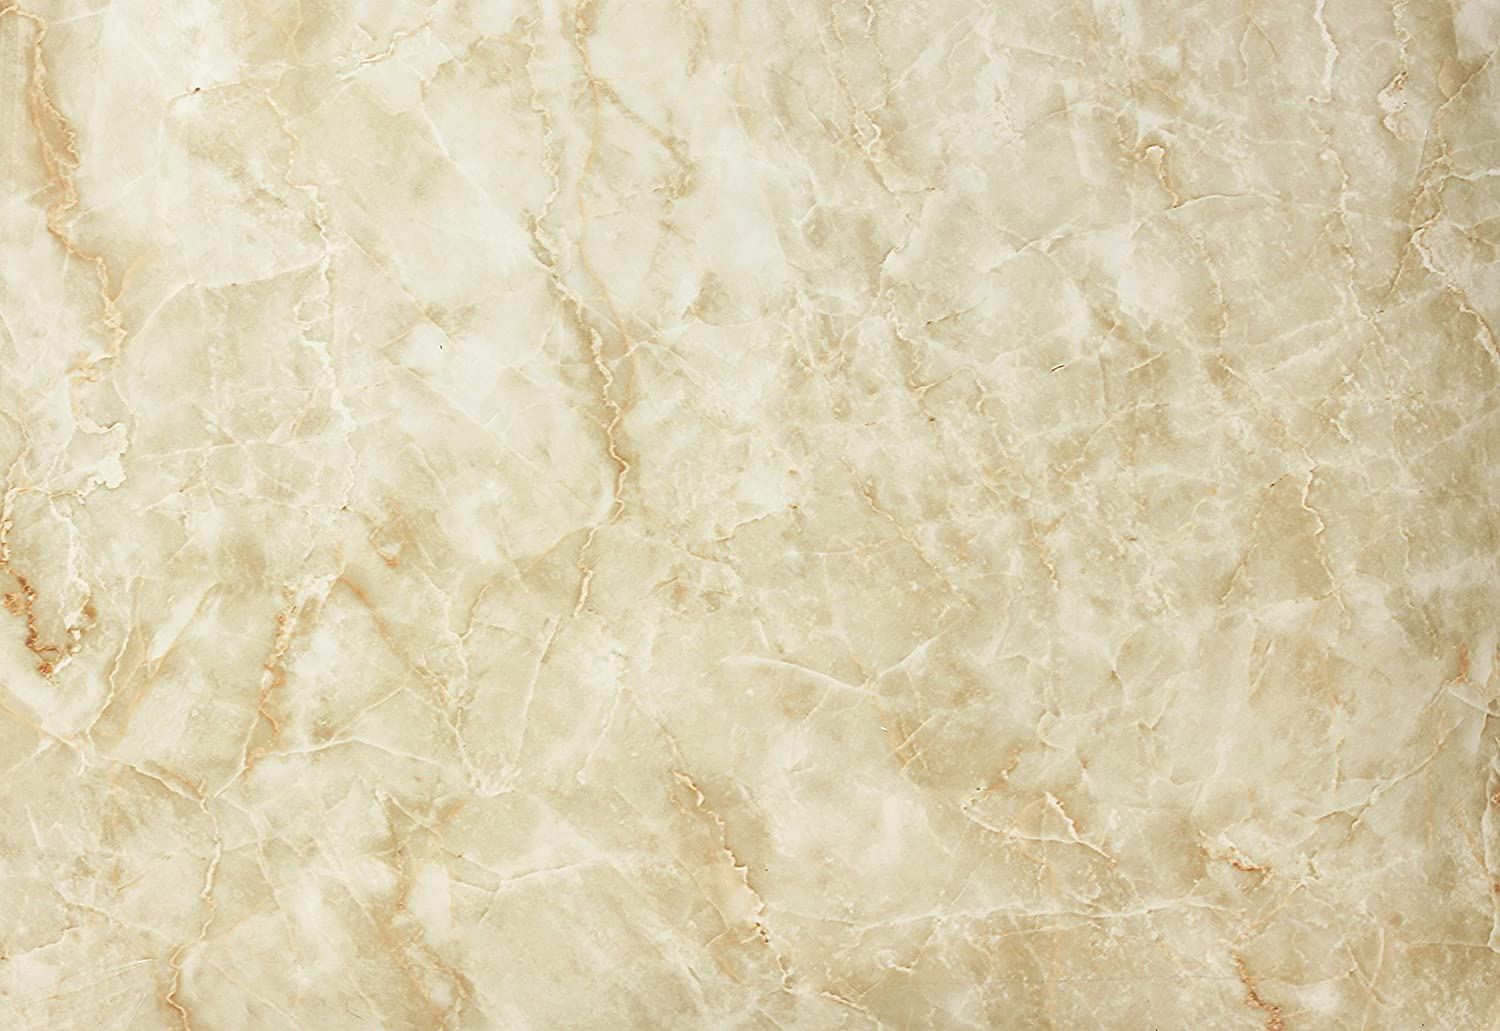 VViViD Gloss Crema Beige Marble Natural Texture Architectural Vinyl Film Roll 16 Inch x 6.5ft